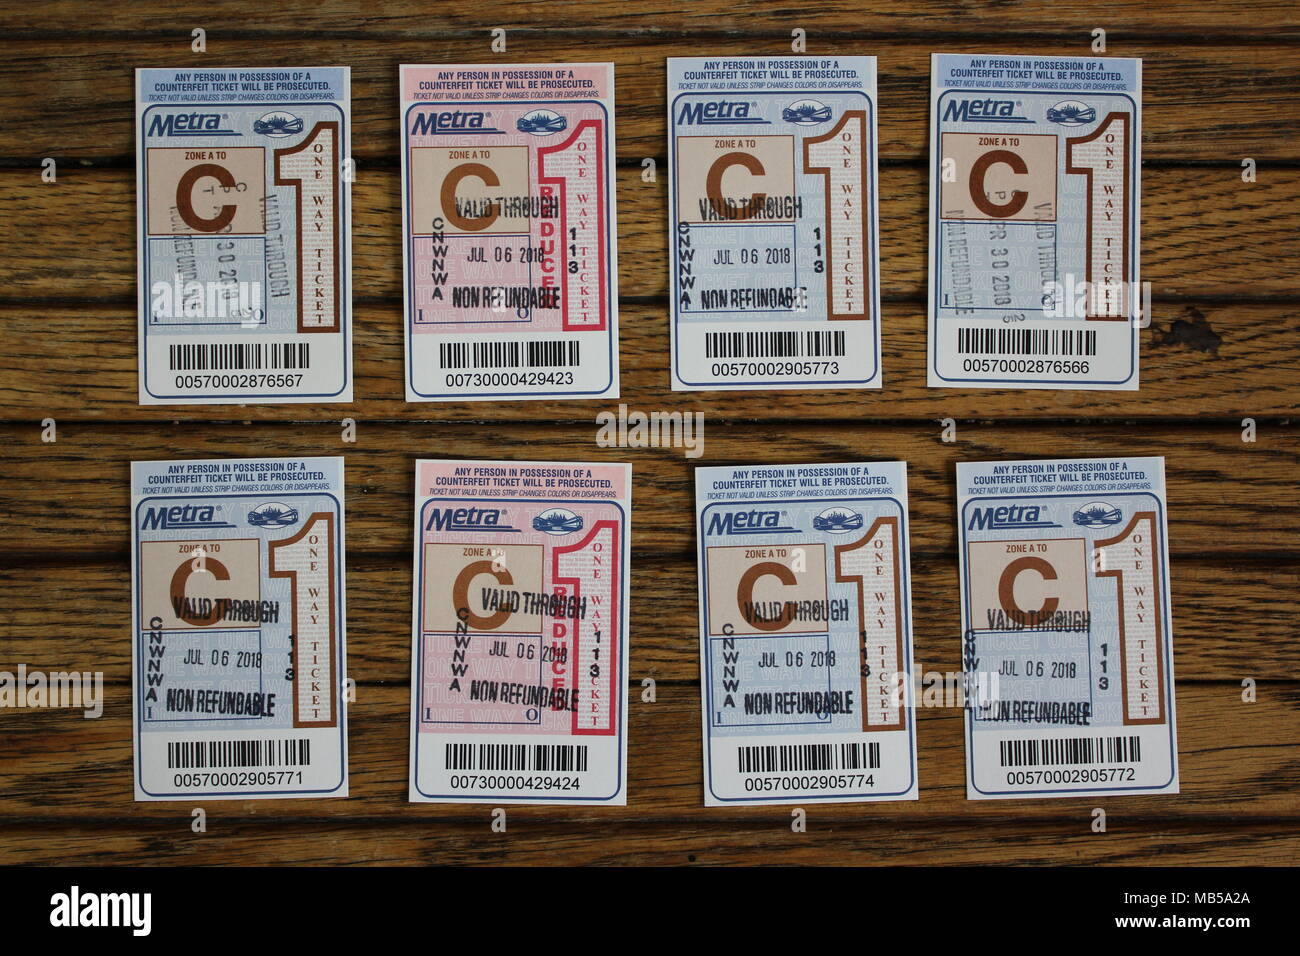 Punched and used Metra train tickets - Stock Image